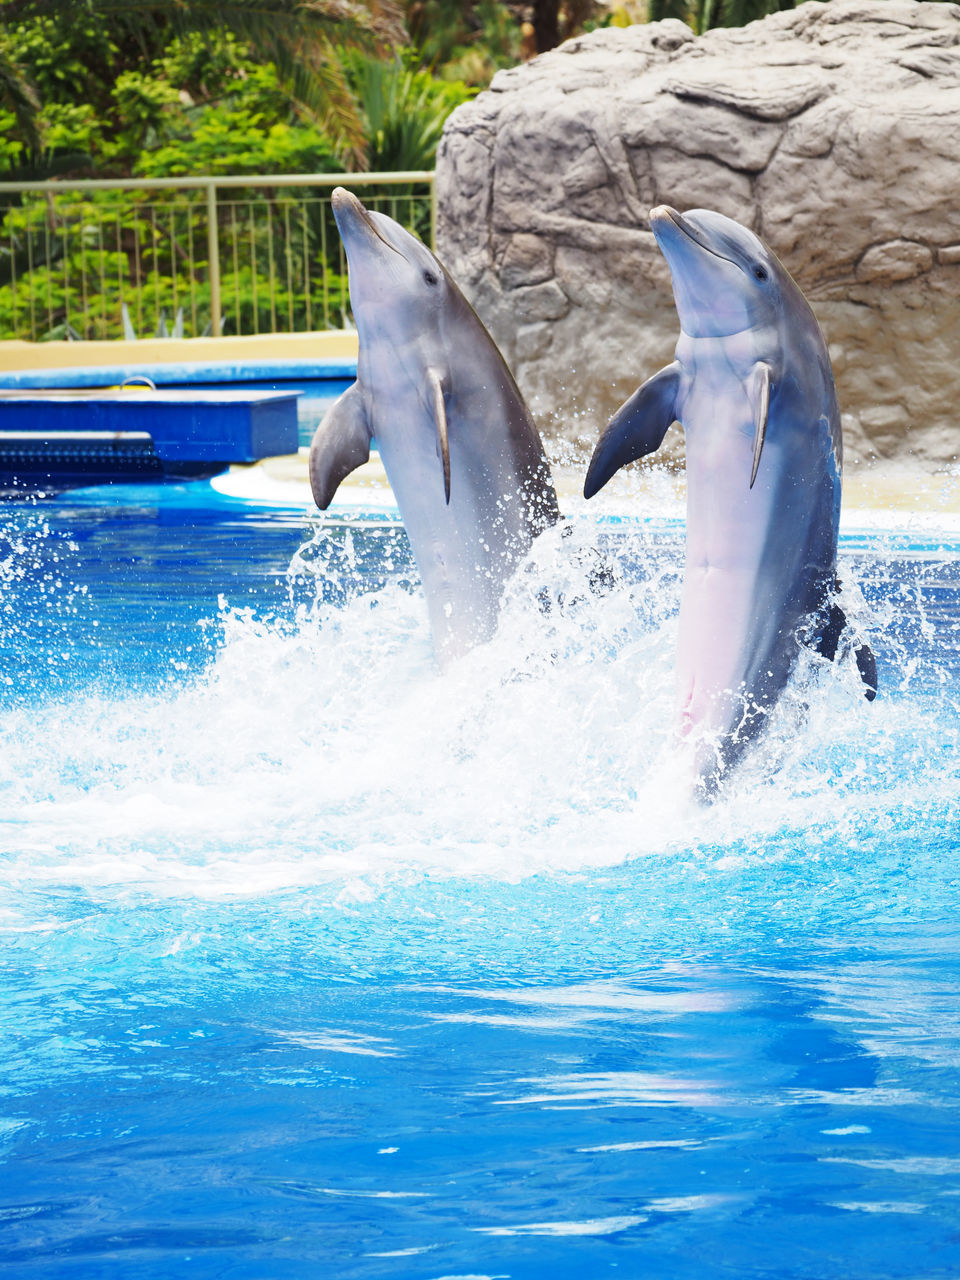 splashing, water, animal themes, jumping, mid-air, day, animals in the wild, motion, one animal, dolphin, animal wildlife, swimming pool, mammal, outdoors, swimming, no people, nature, sea life